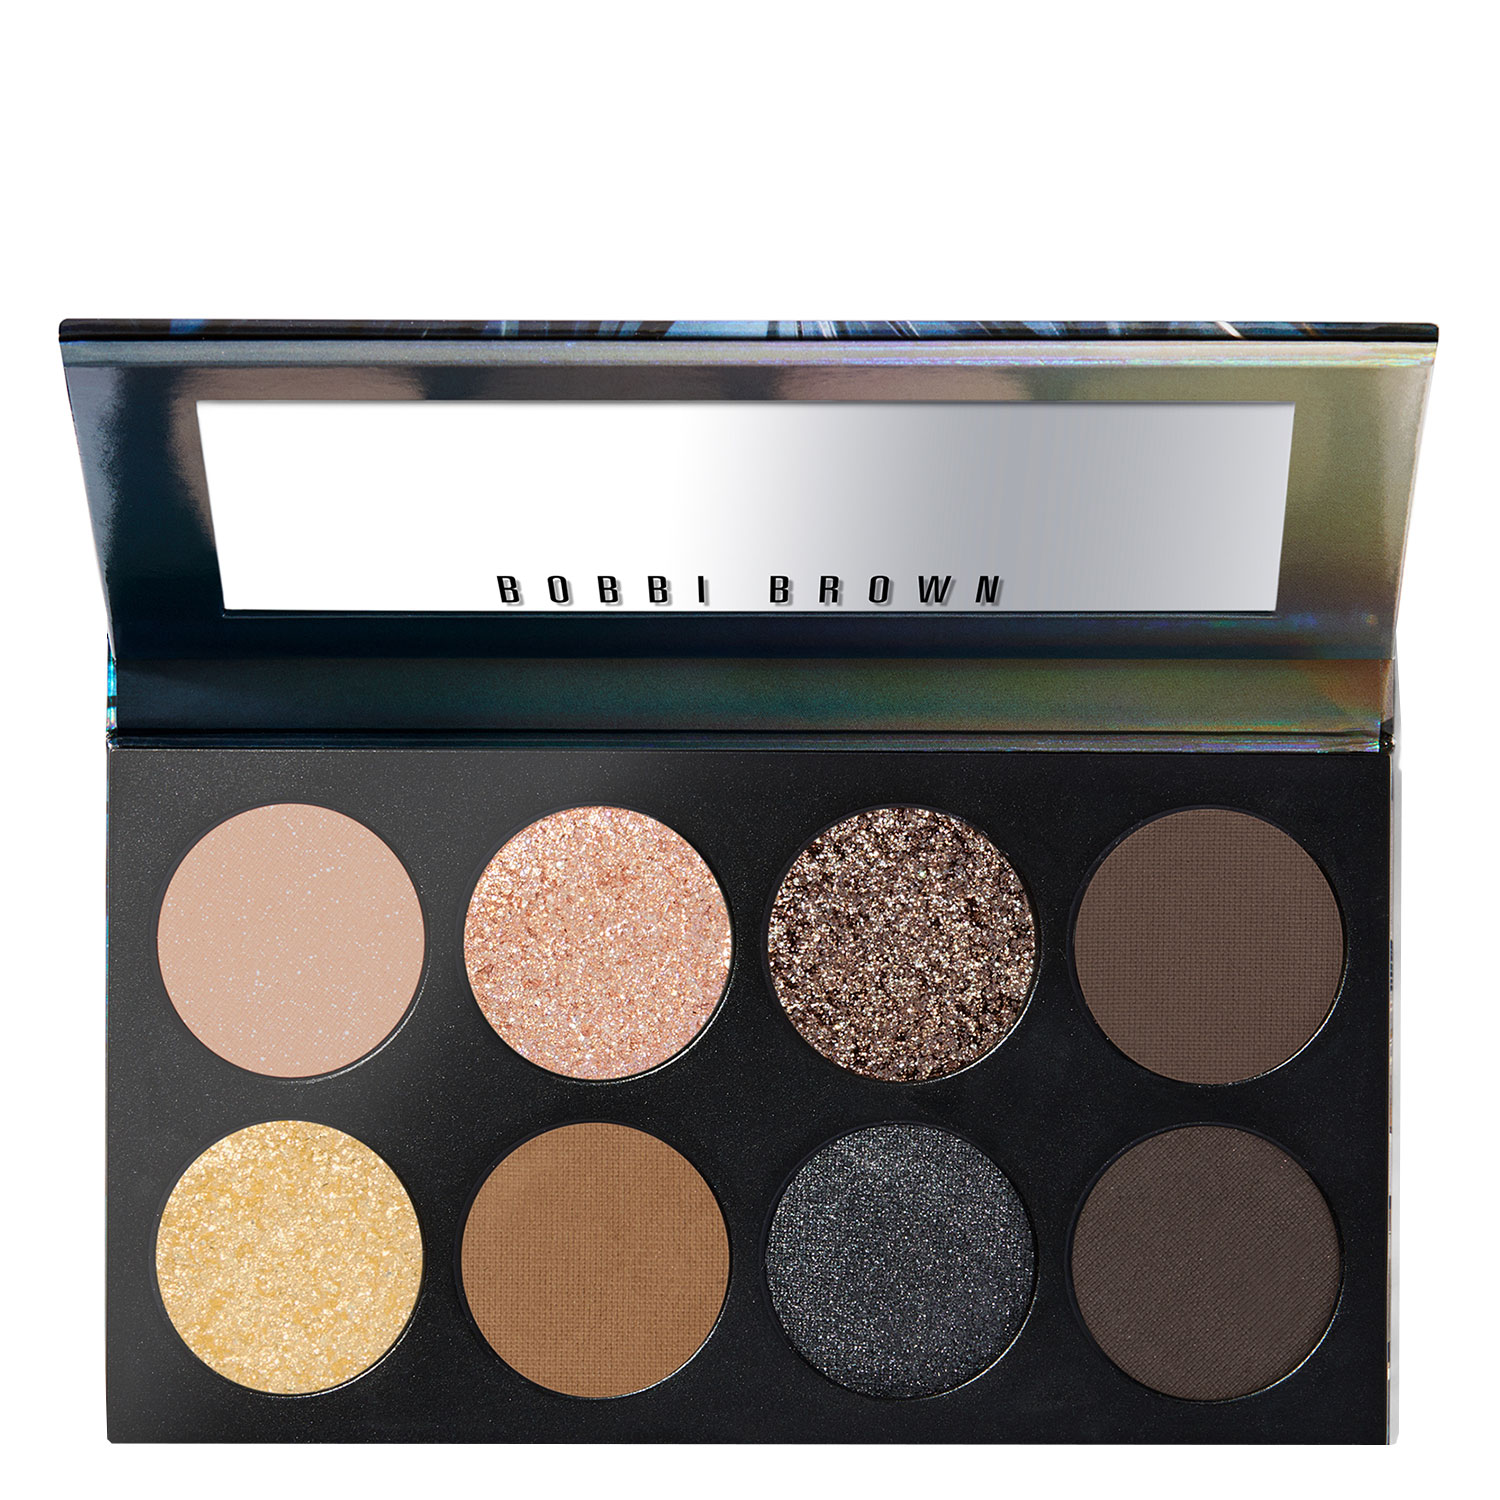 BB Luxe Capsule Collection - Smoke & Metals Eye Shadow Palette